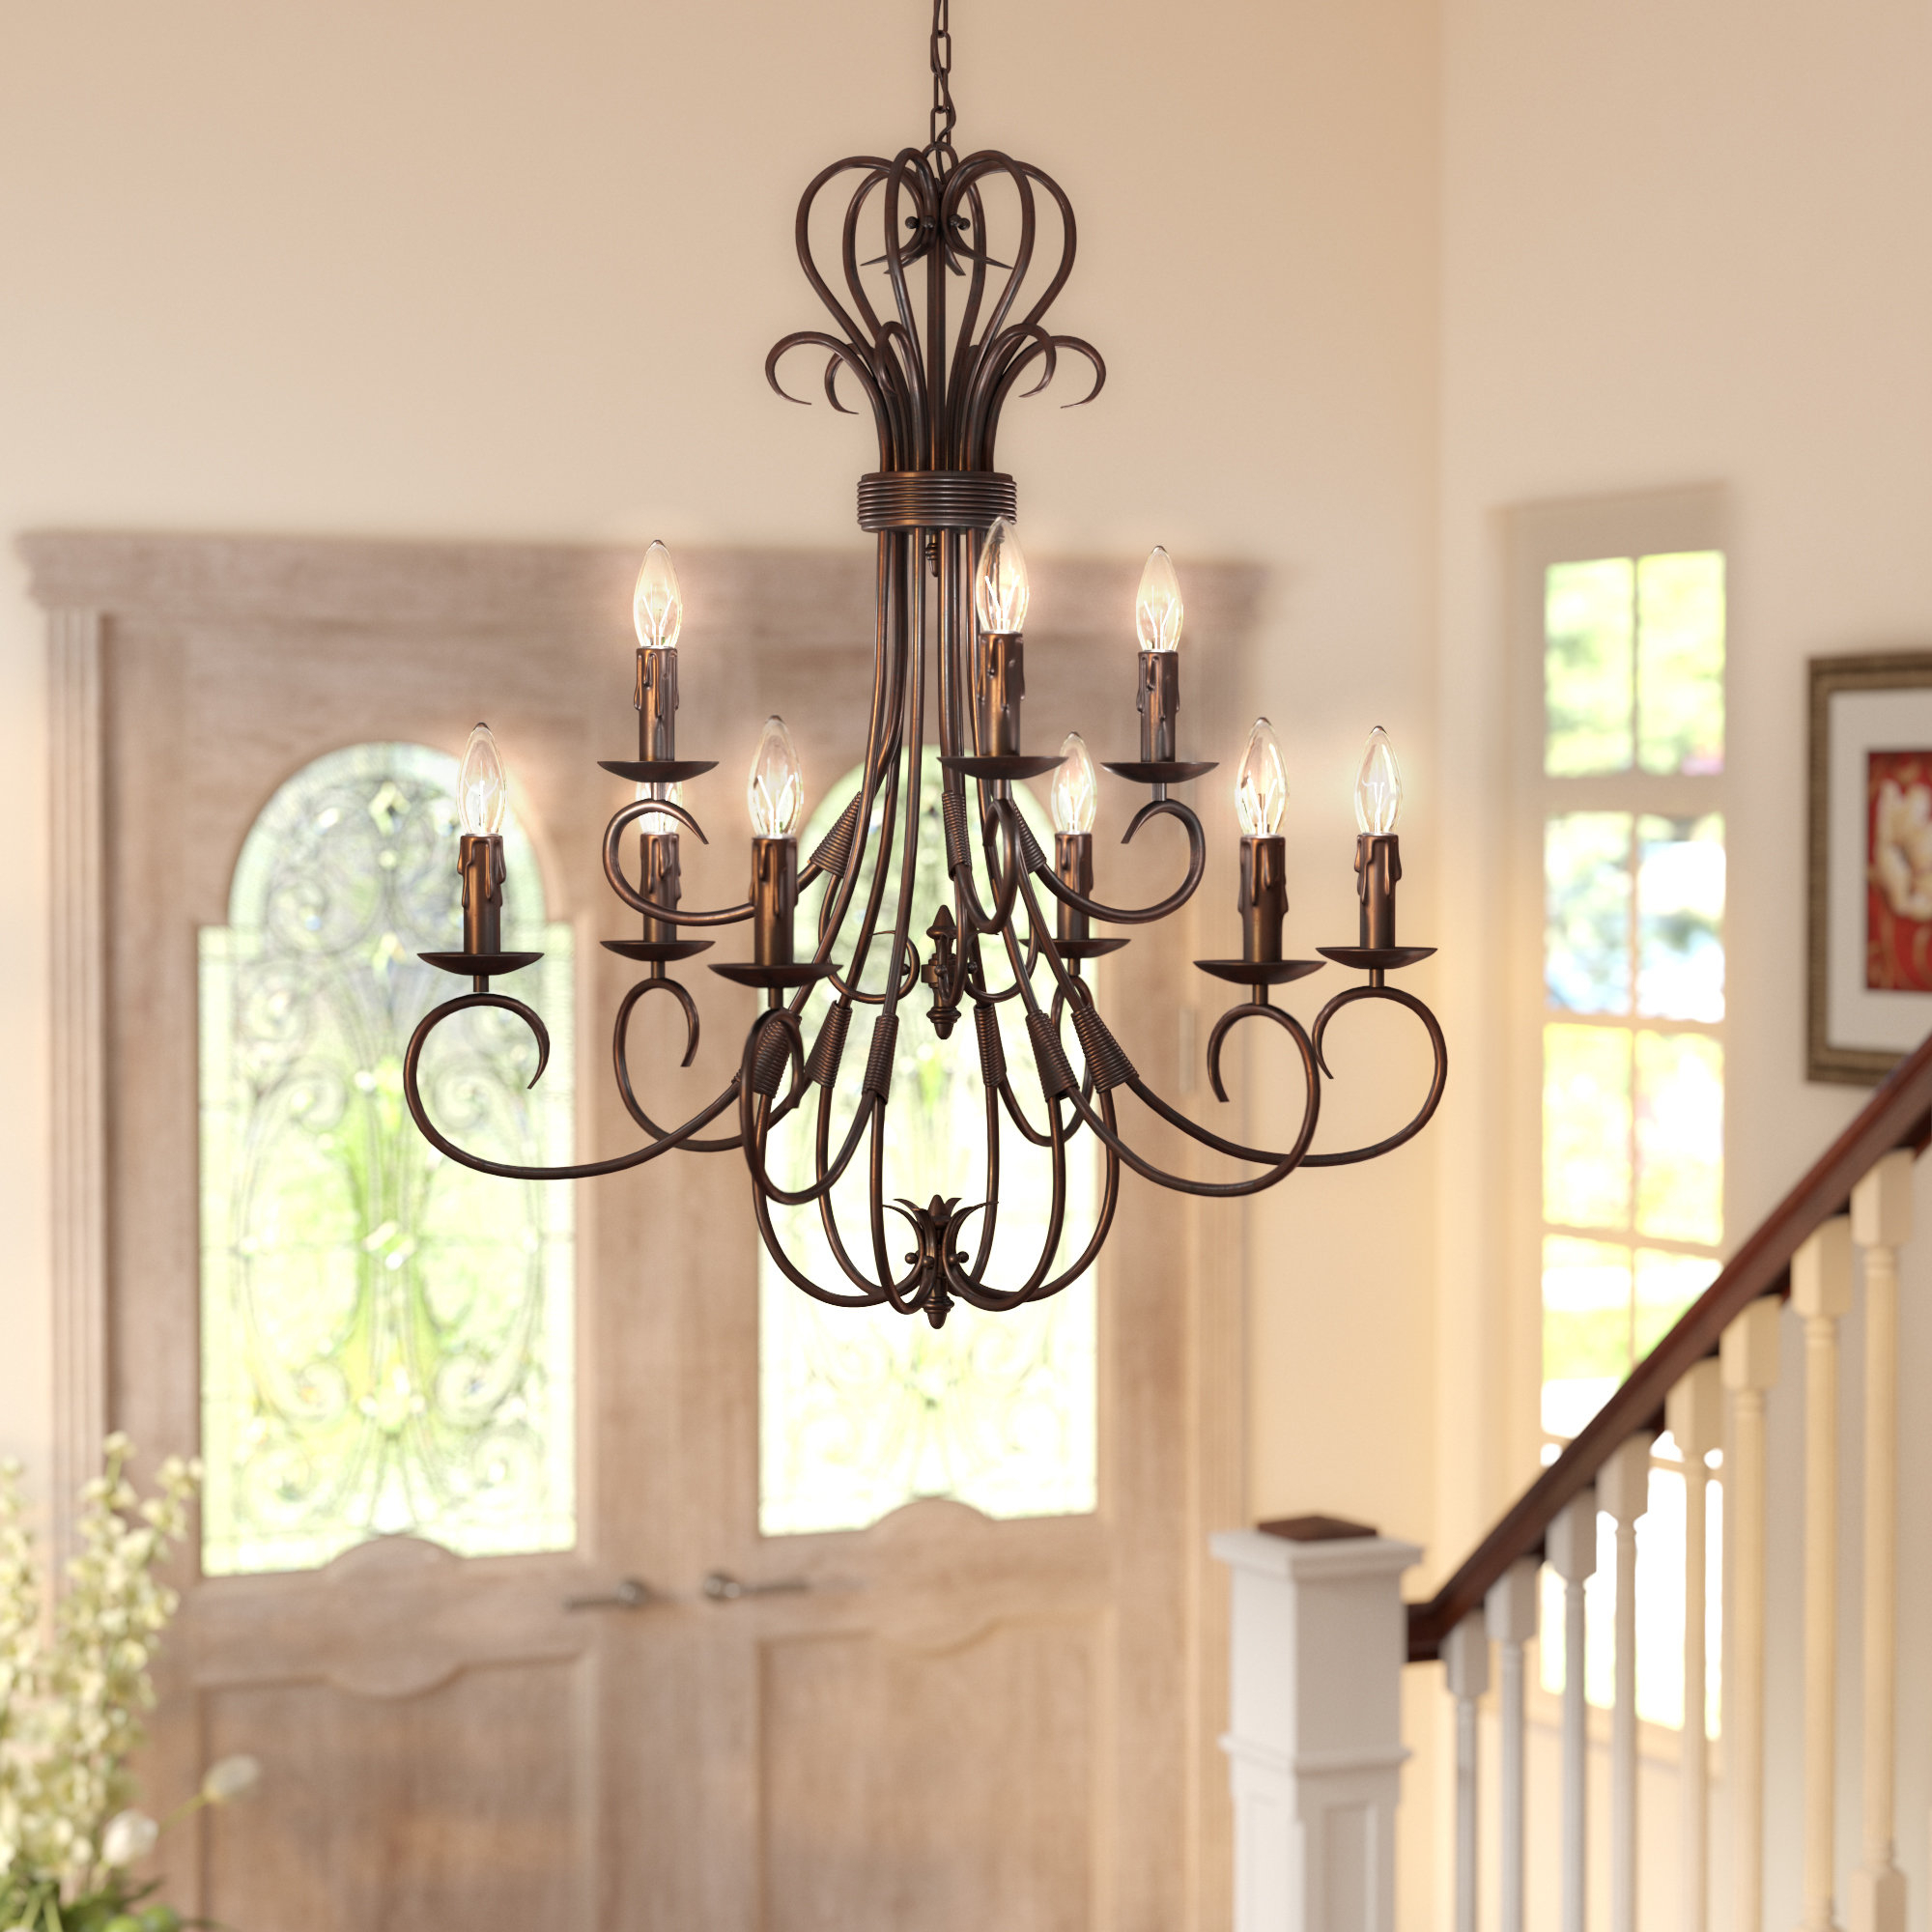 Alcott Hill Gaines 9 Light Candle Style Chandelier With Regard To Gaines 9 Light Candle Style Chandeliers (View 3 of 30)